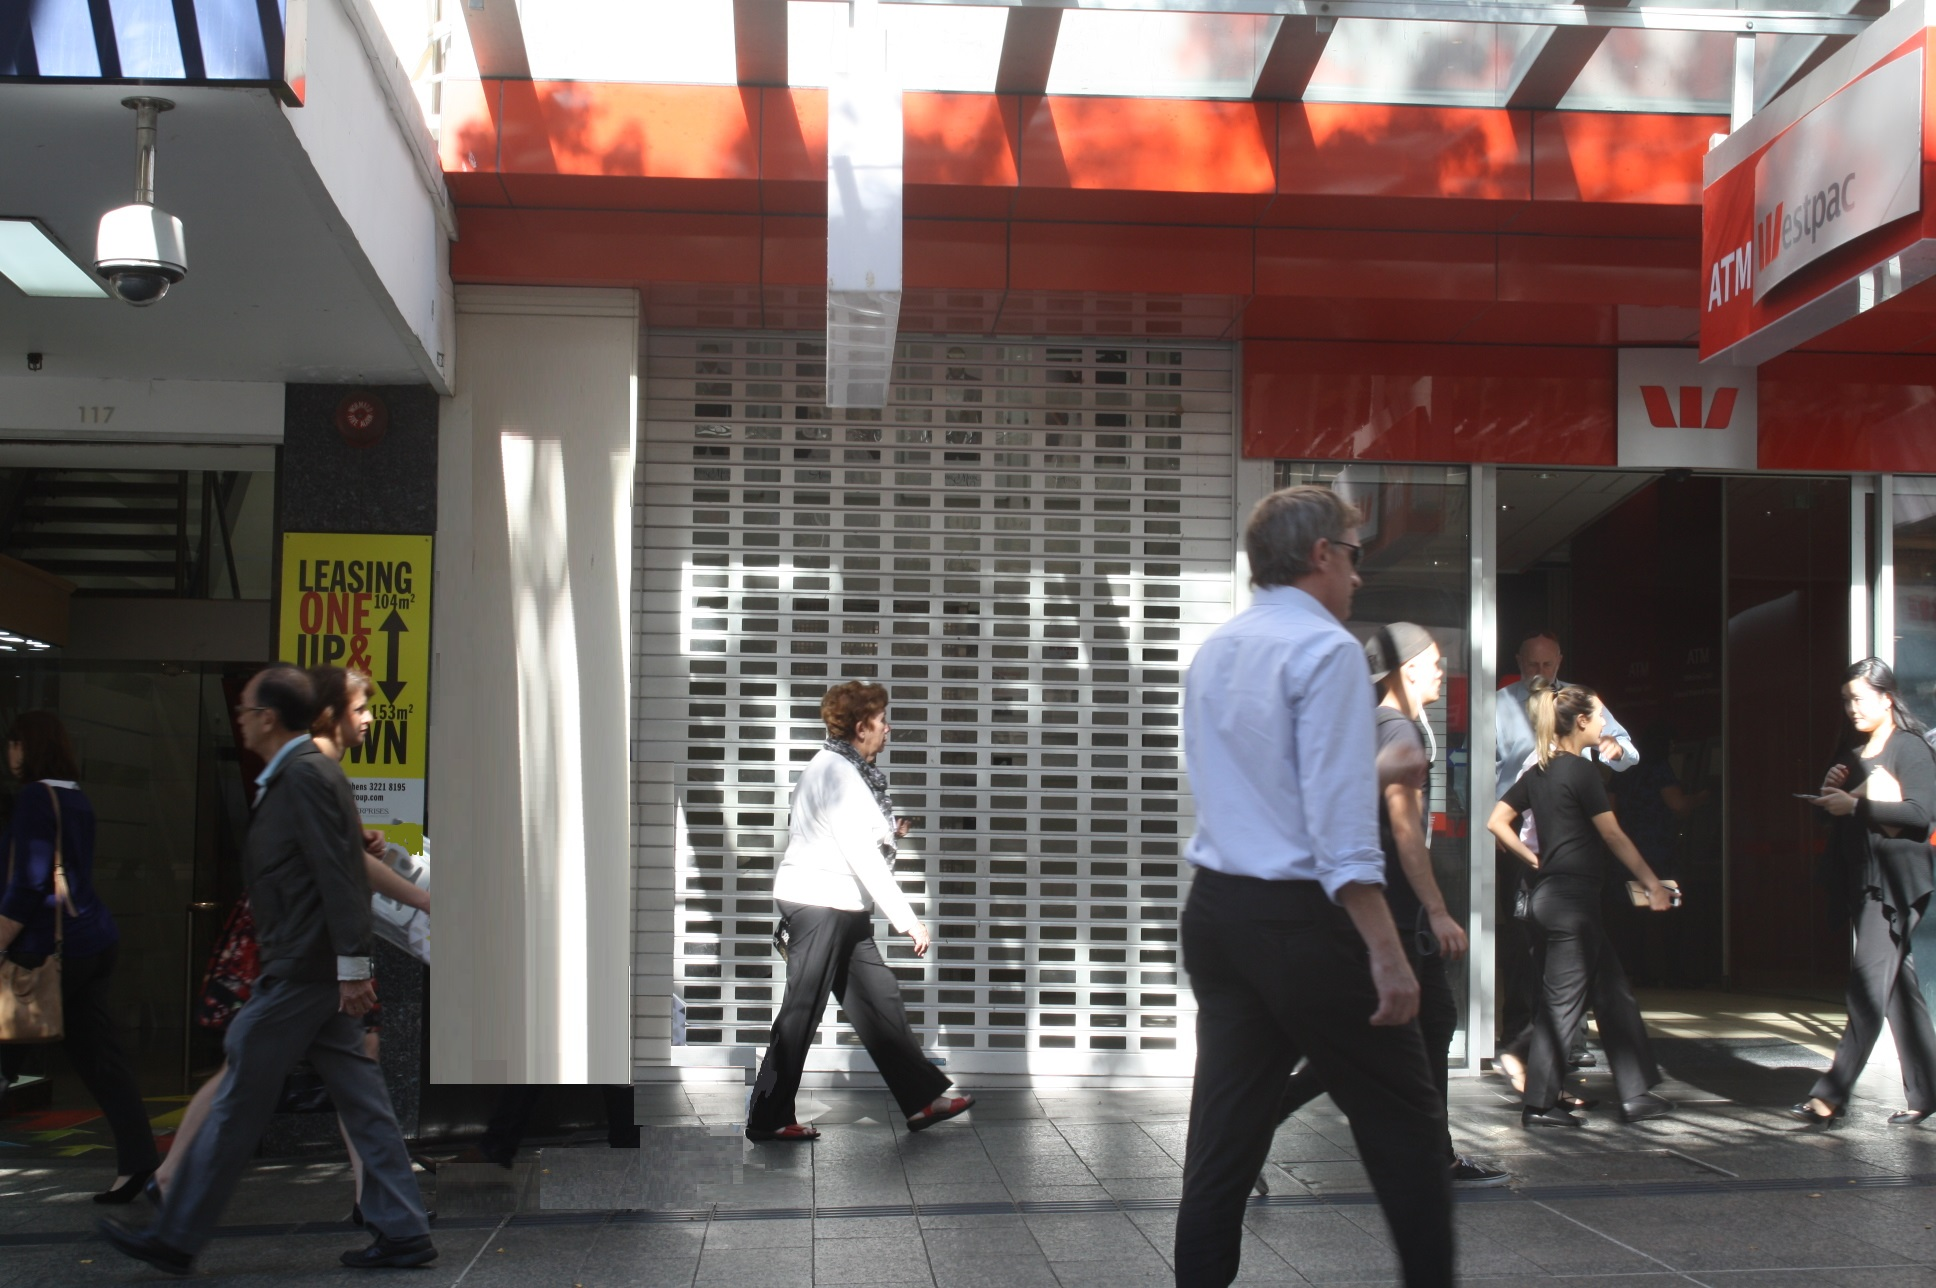 246 m2 Basement Retail in Queen St Mall with Lift Access from Mall